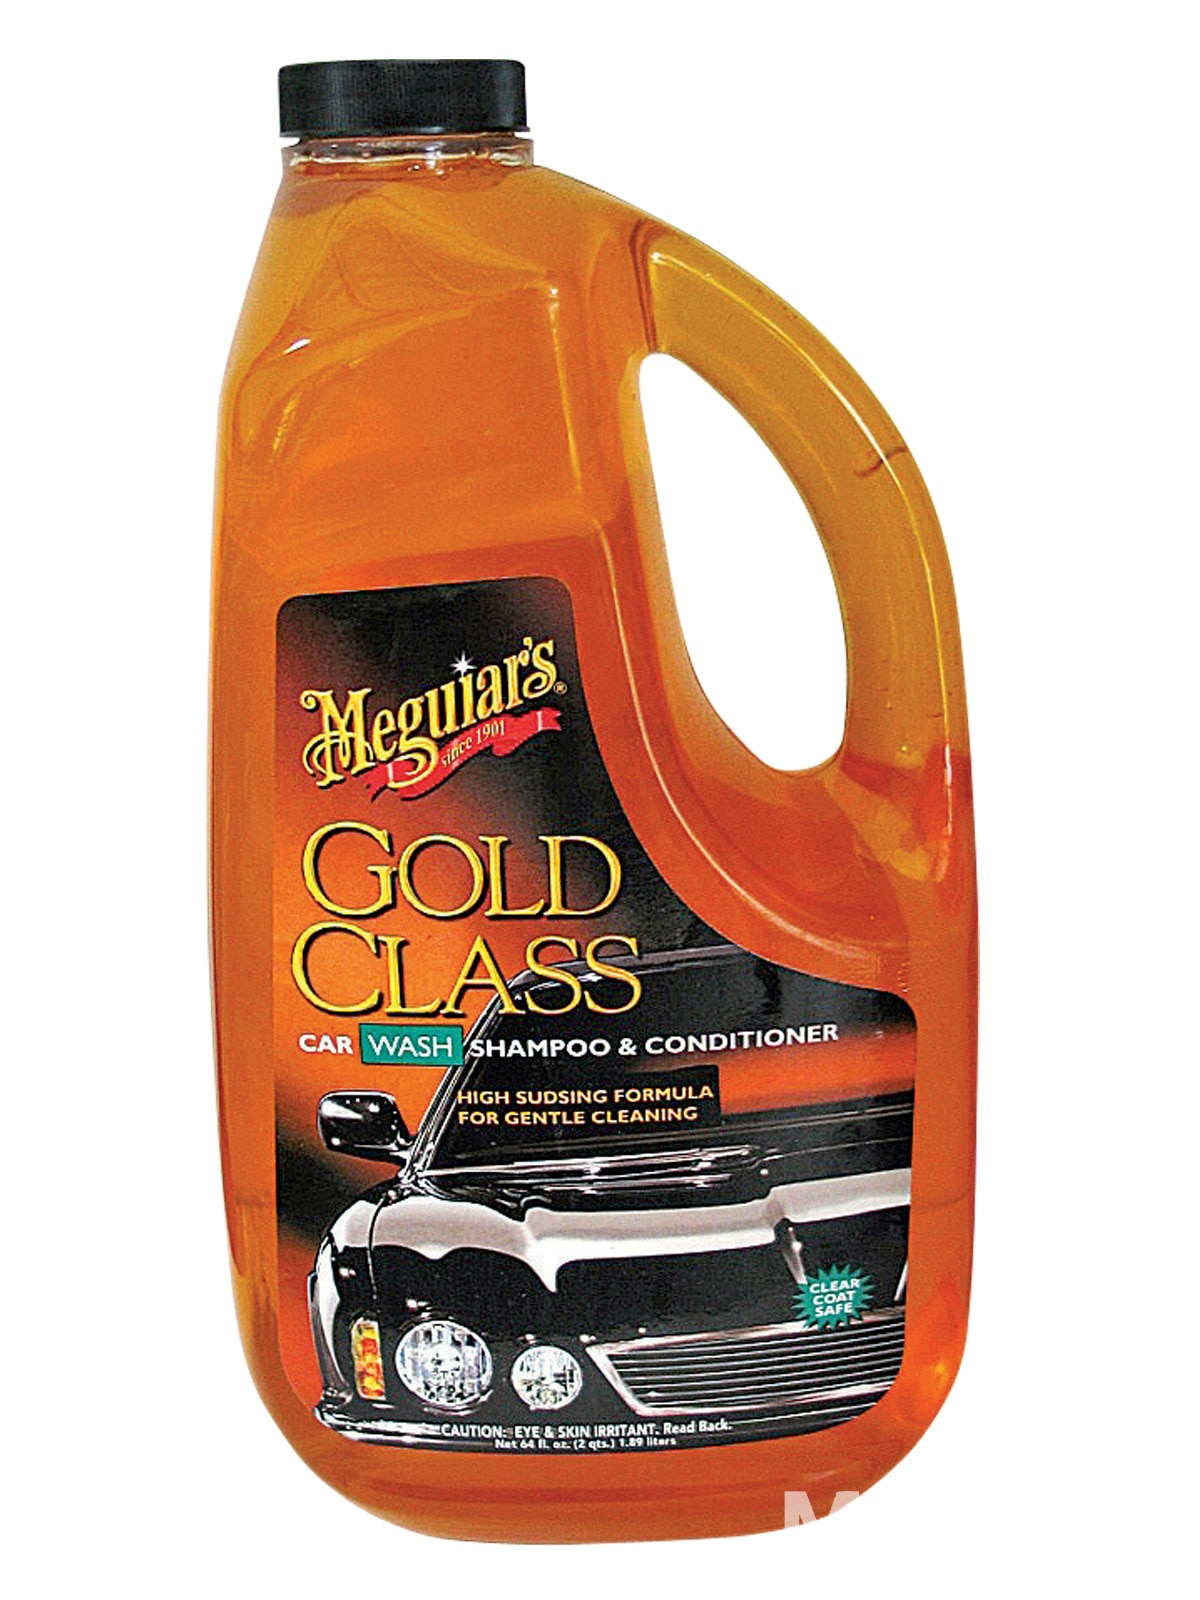 Ford Mustang Vintage Megular Gold Class Cleaner